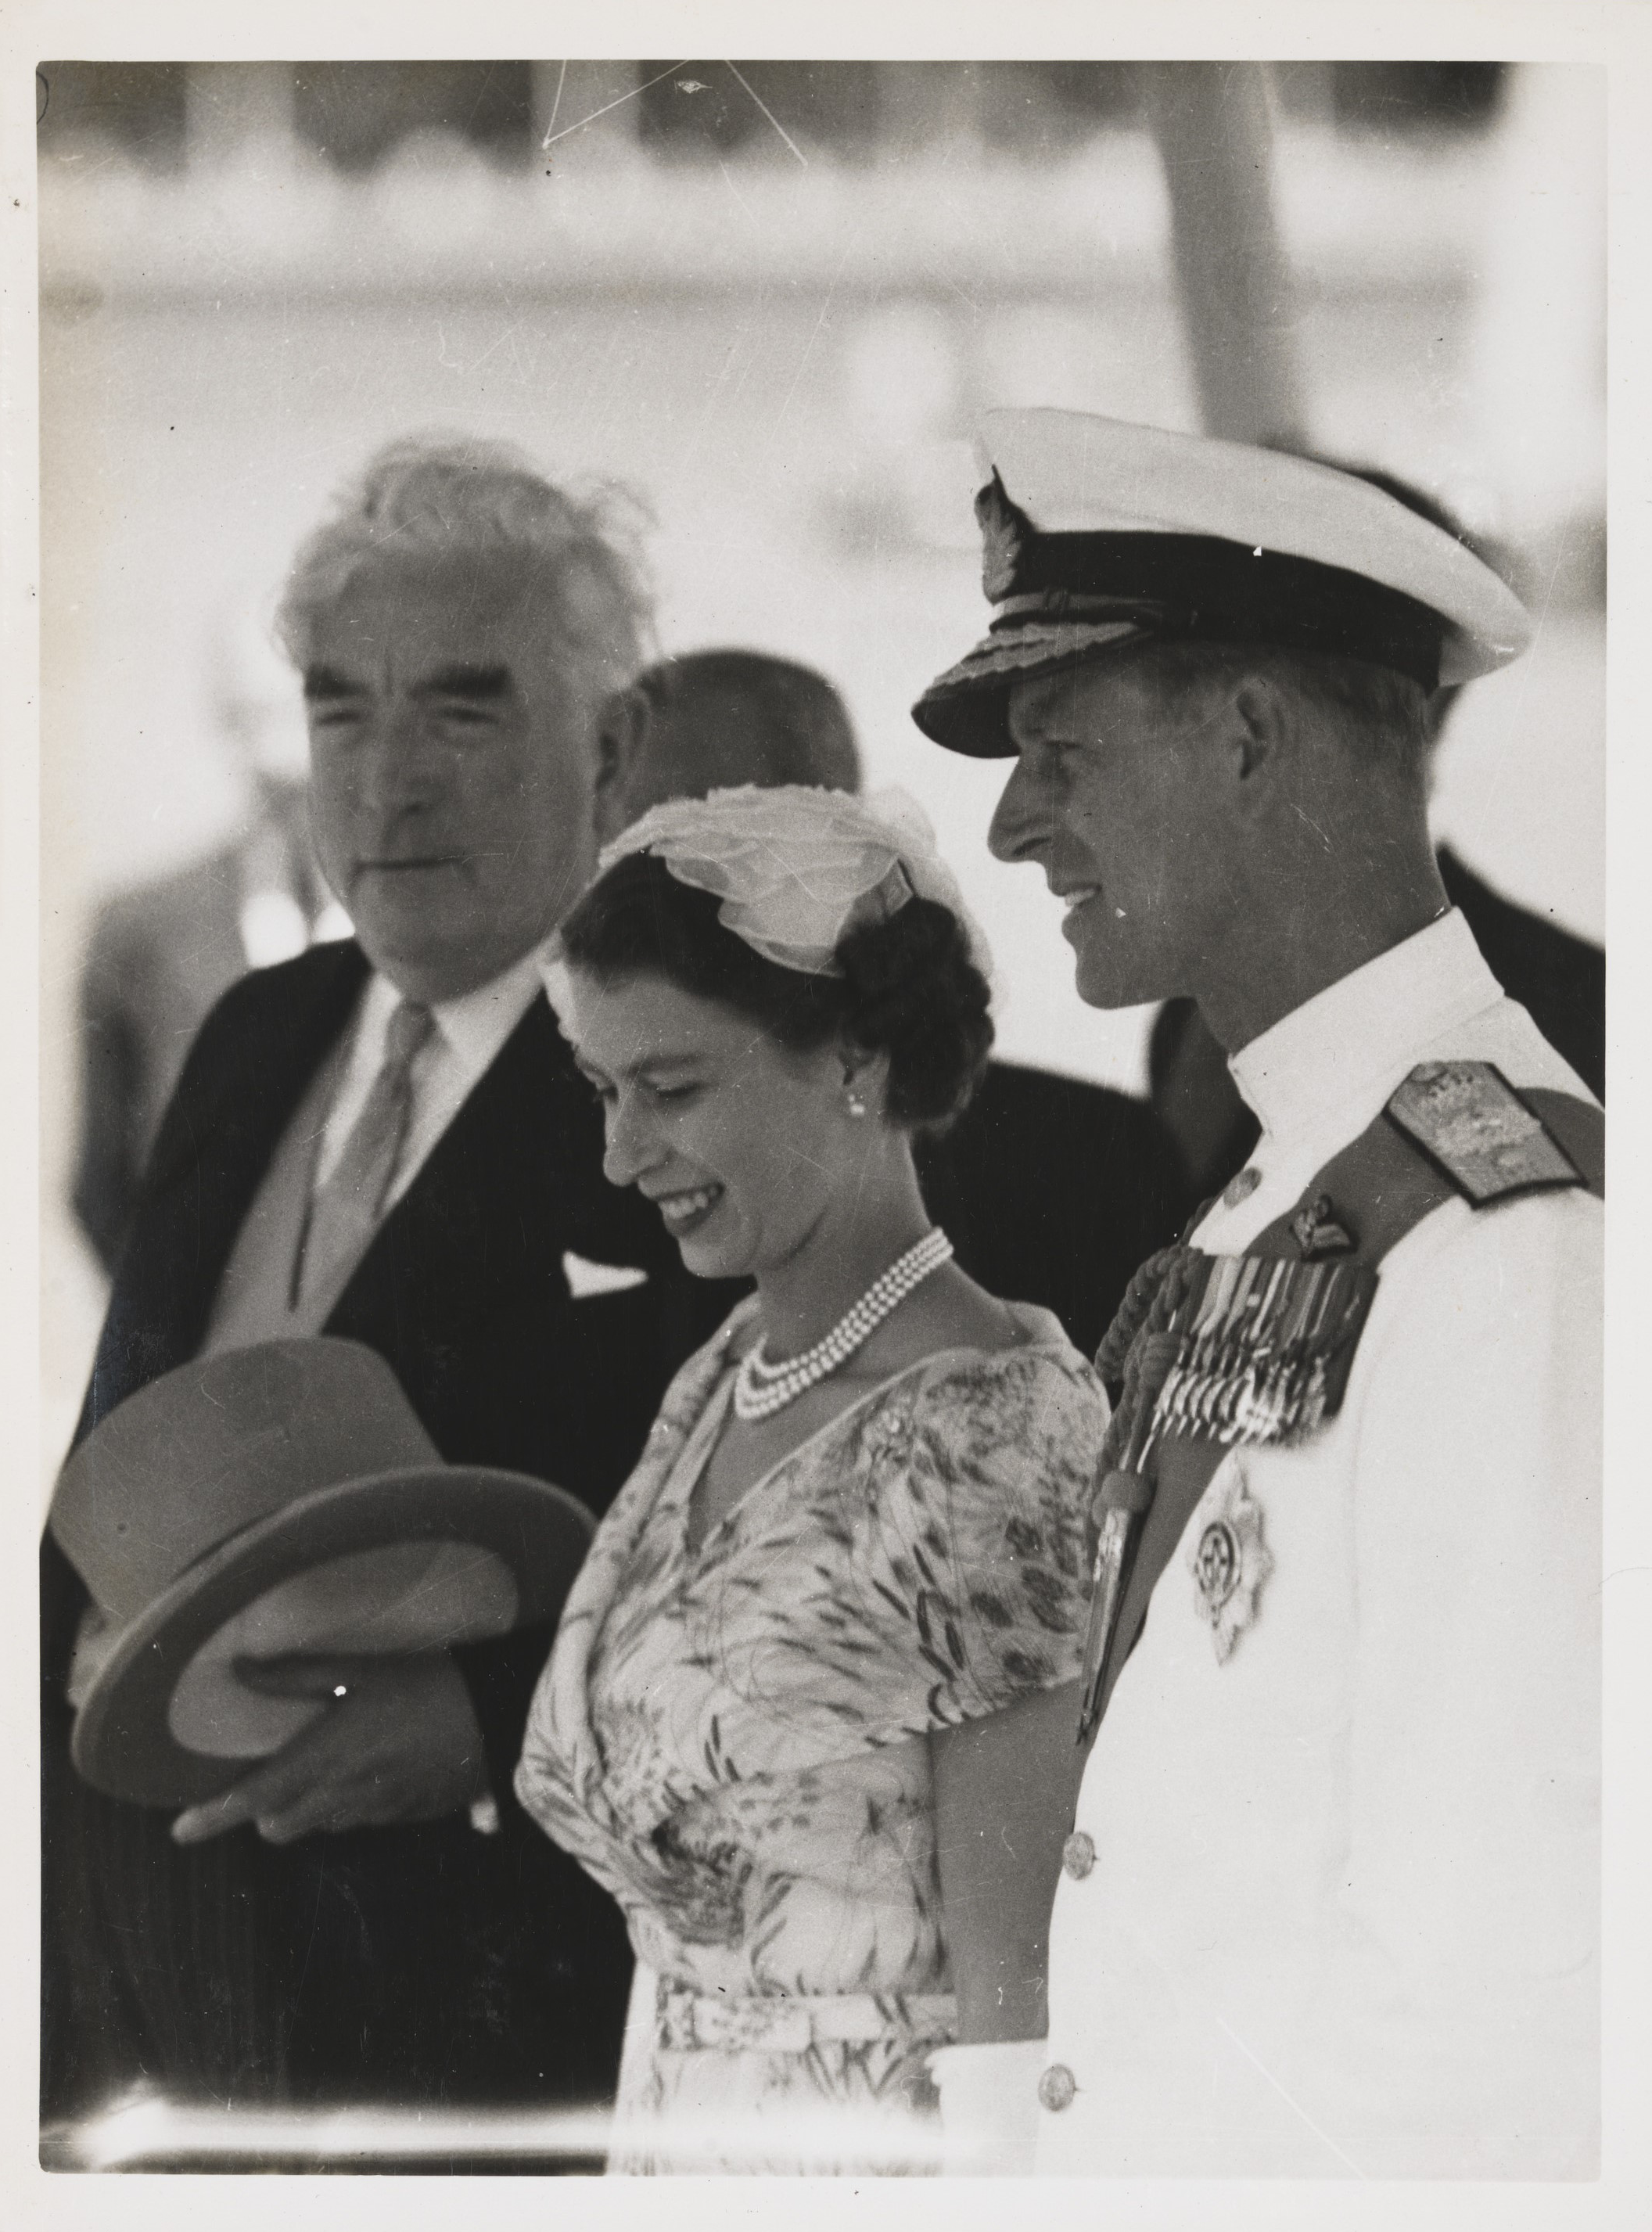 queen_elizabeth_ii_robert_menzies_duke_of_edinburgh.png